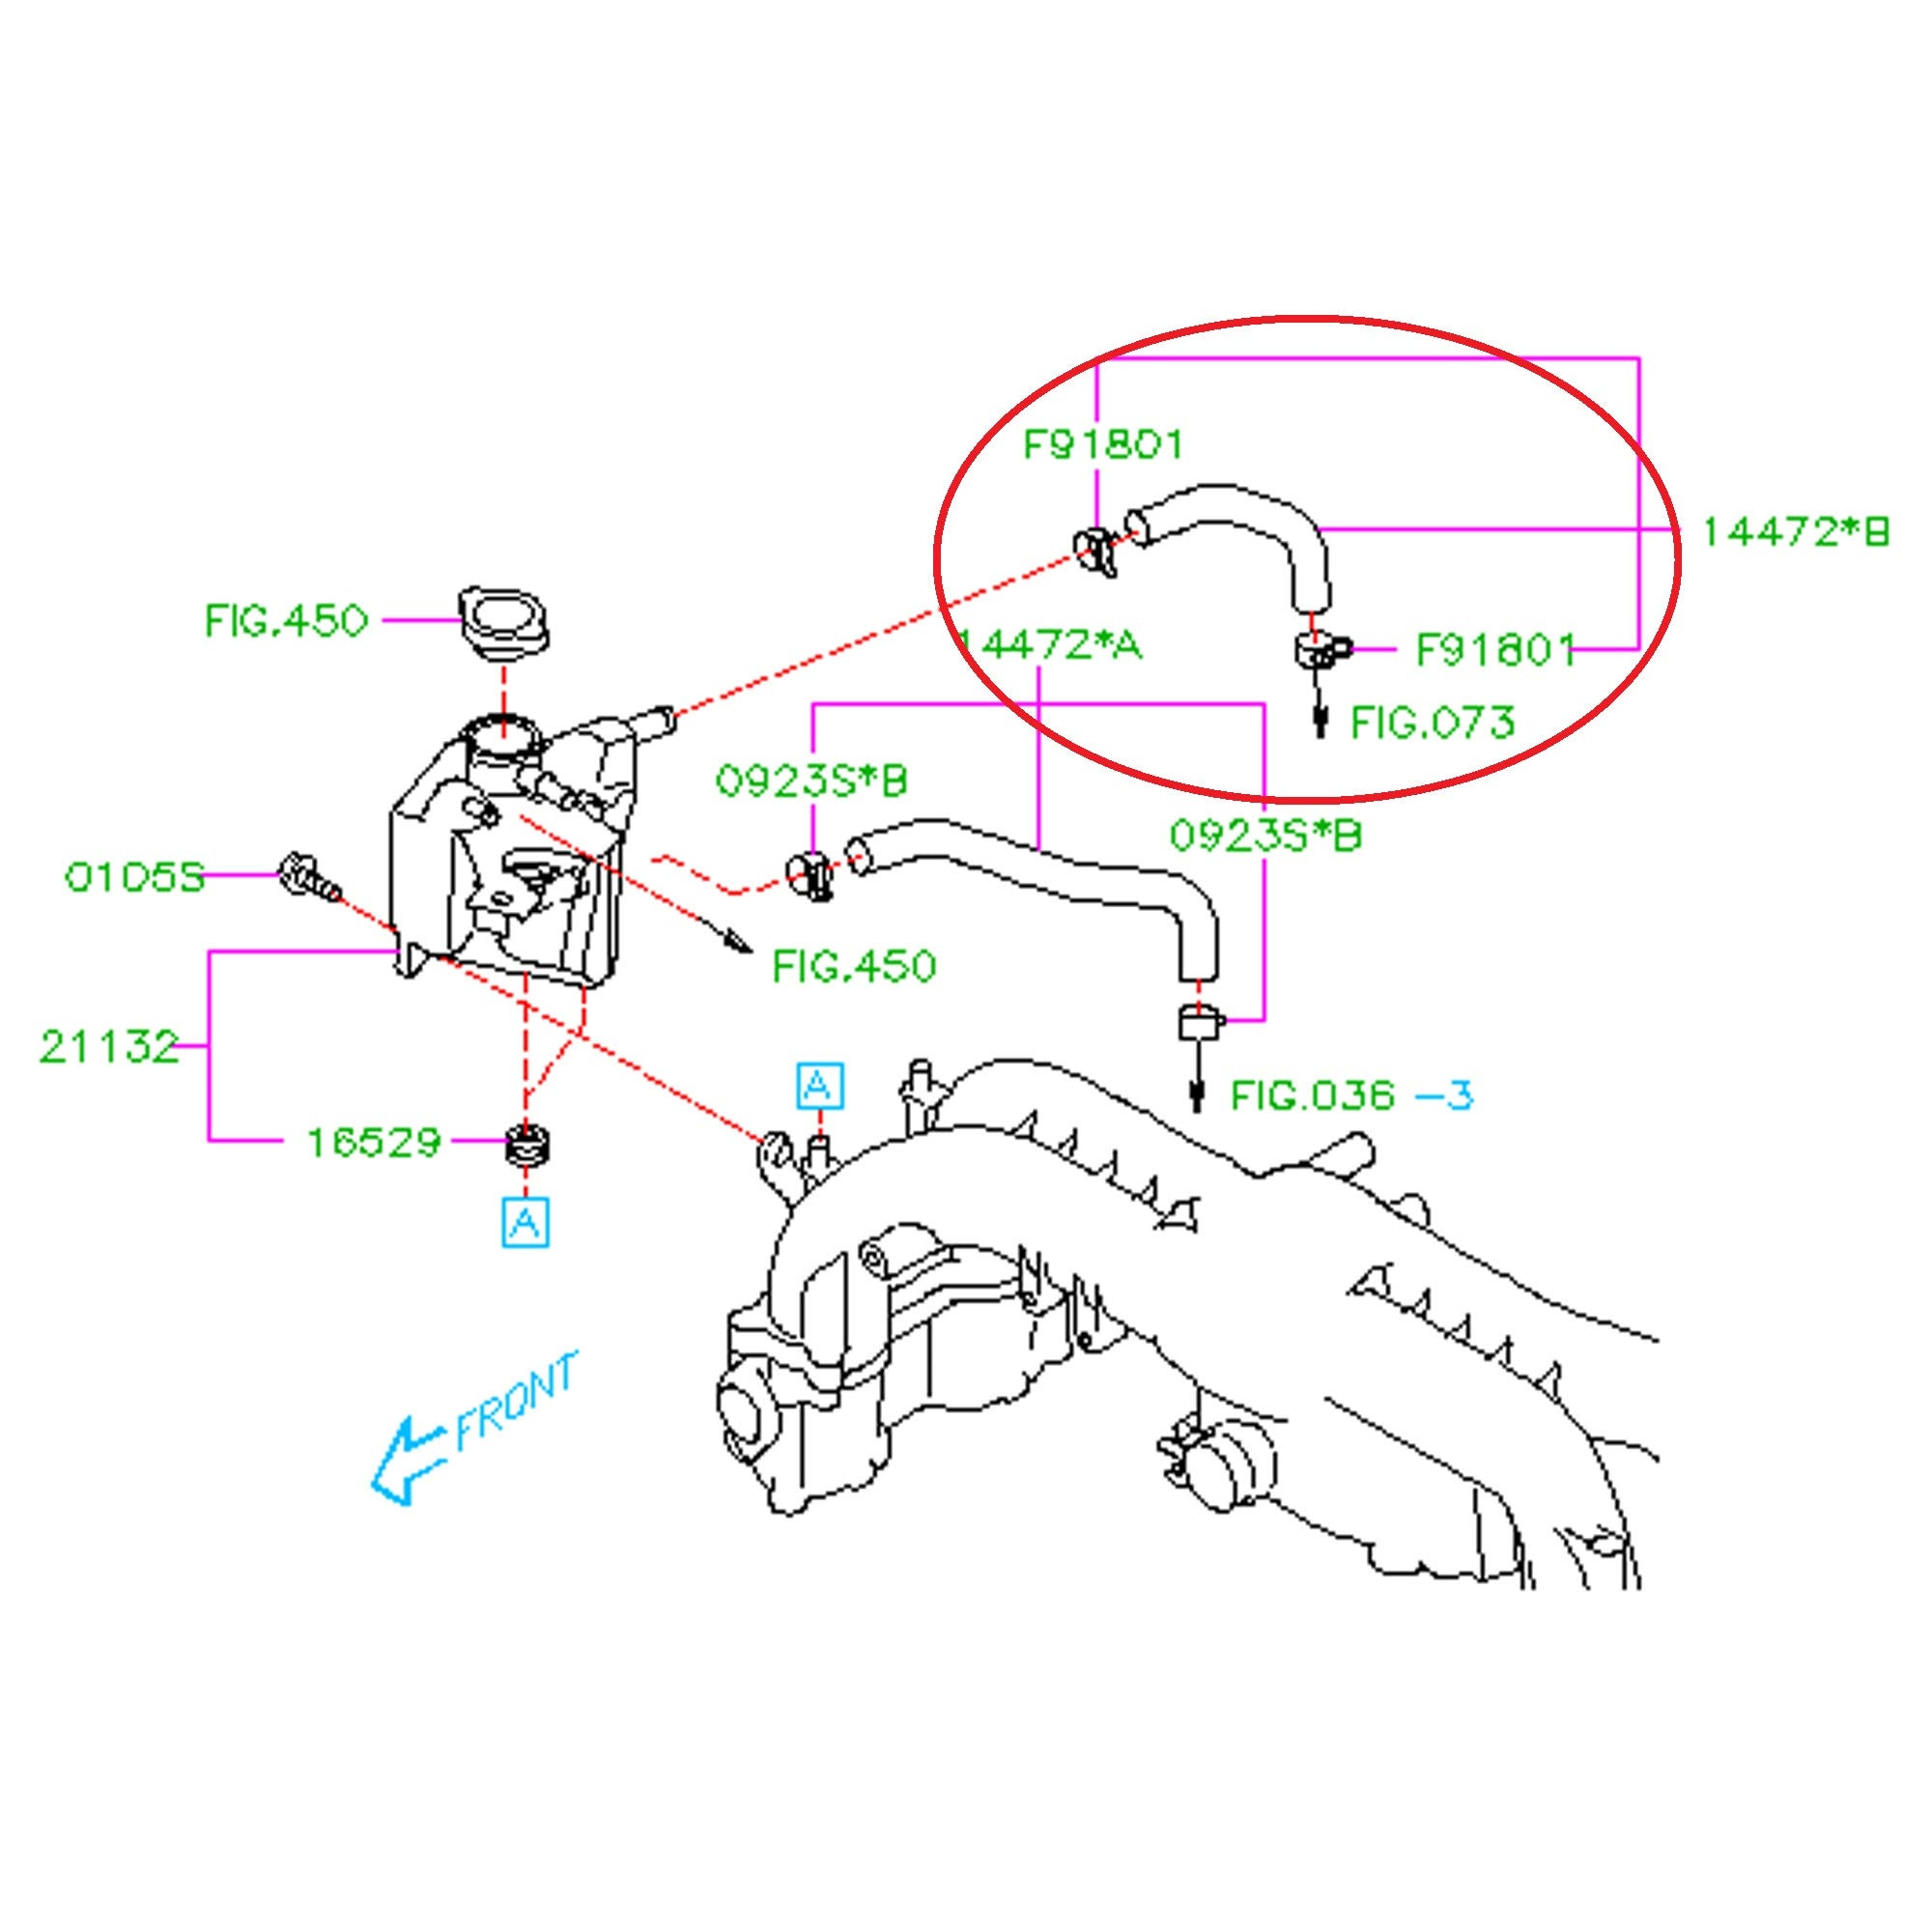 Subaru Engine Cooling Diagram Worksheet And Wiring 2001 2008 2014 Wrx Turbo To Expansion Tank Hose Fastwrx Com Rh Outback Block